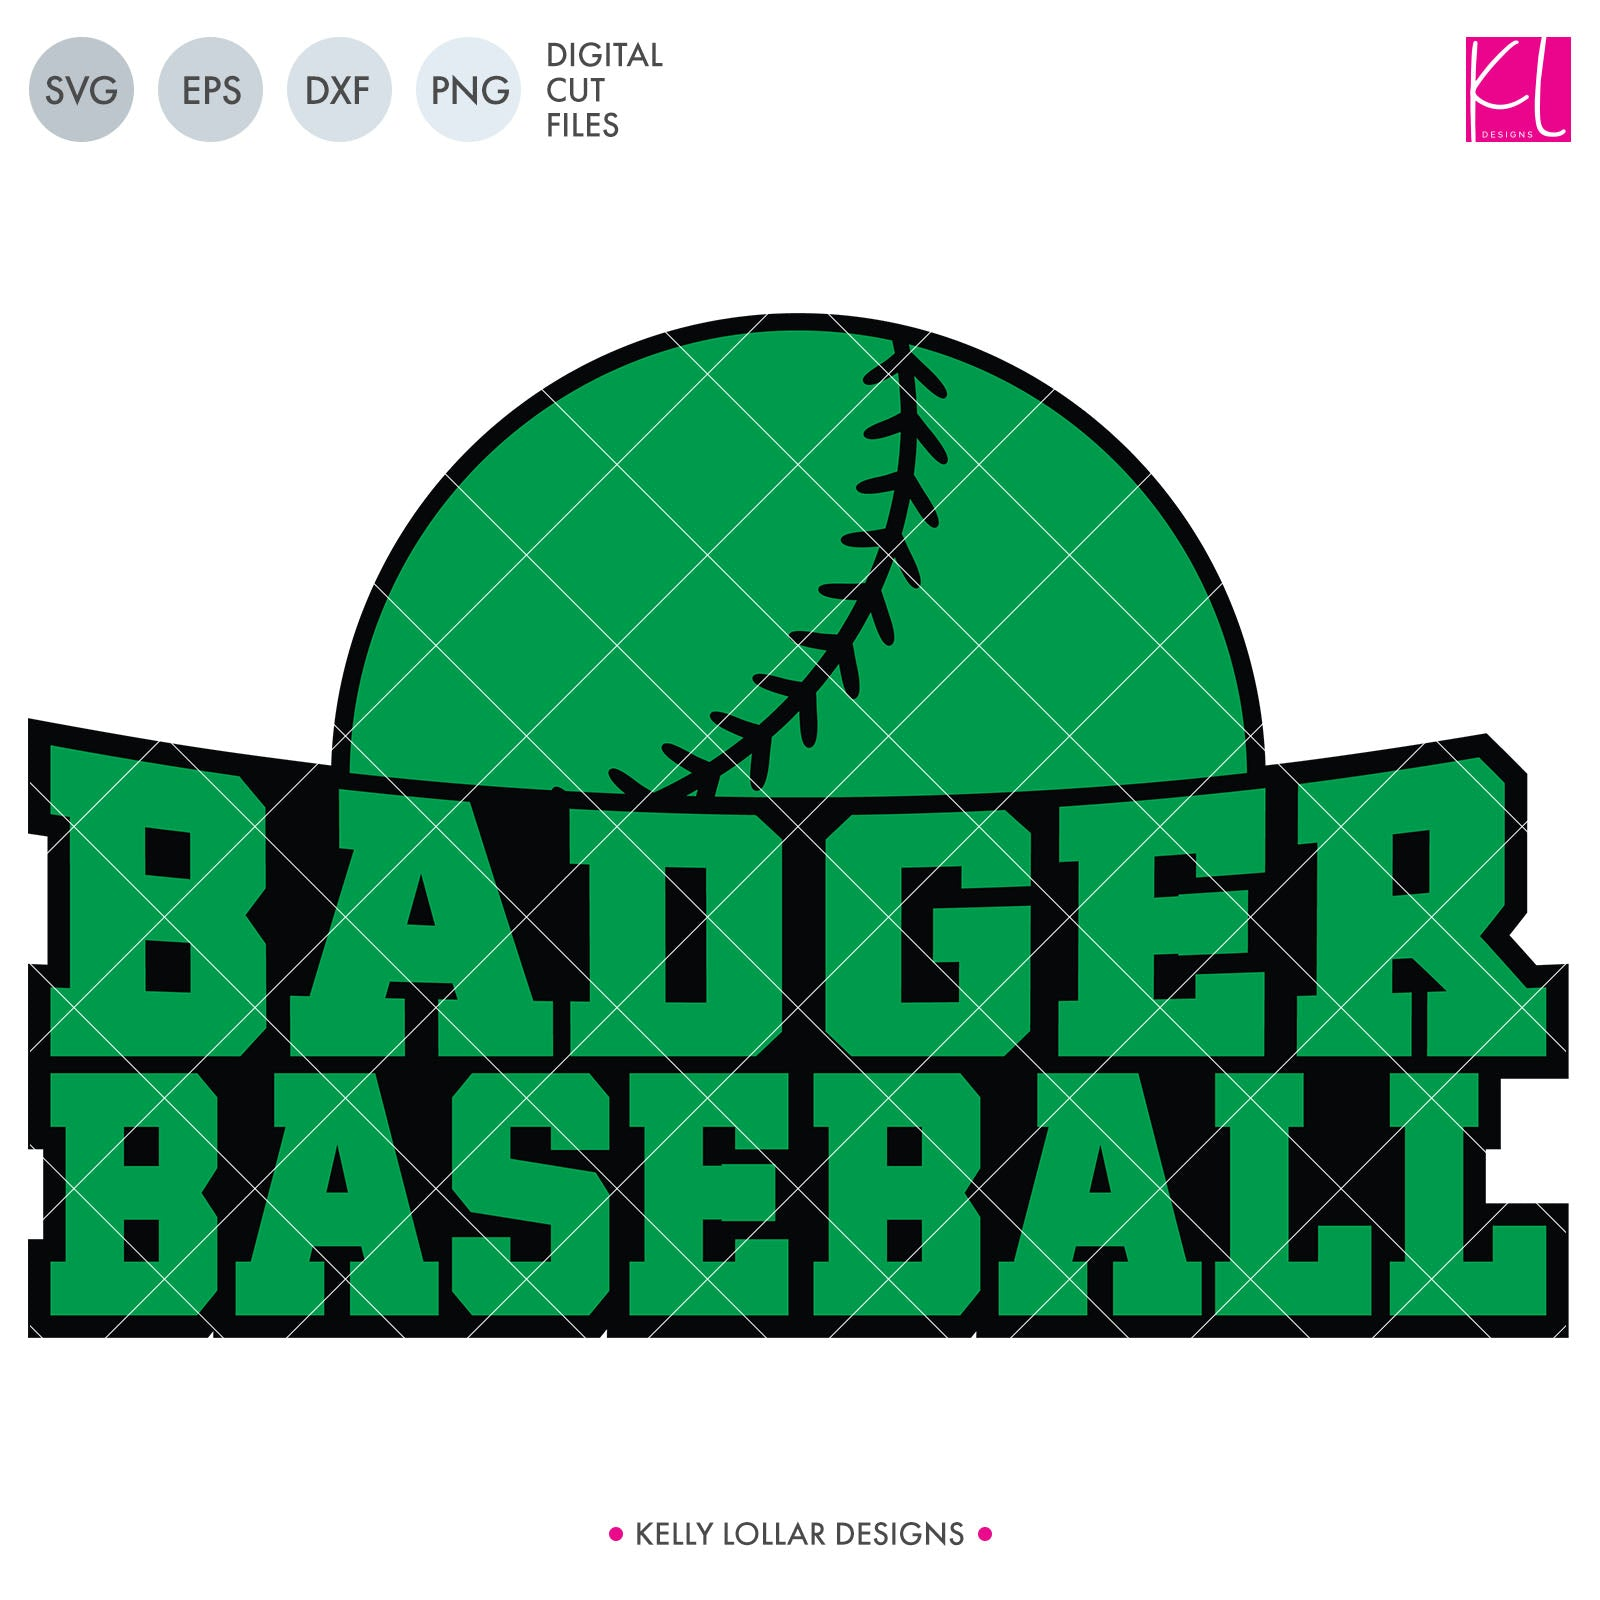 Badger Curved Baseball | SVG DXF EPS PNG Cut Files This unisex sports design is fit for the whole family with Badger Baseball curved under a half ball. This two-piece design is easy to use and great for customizing with